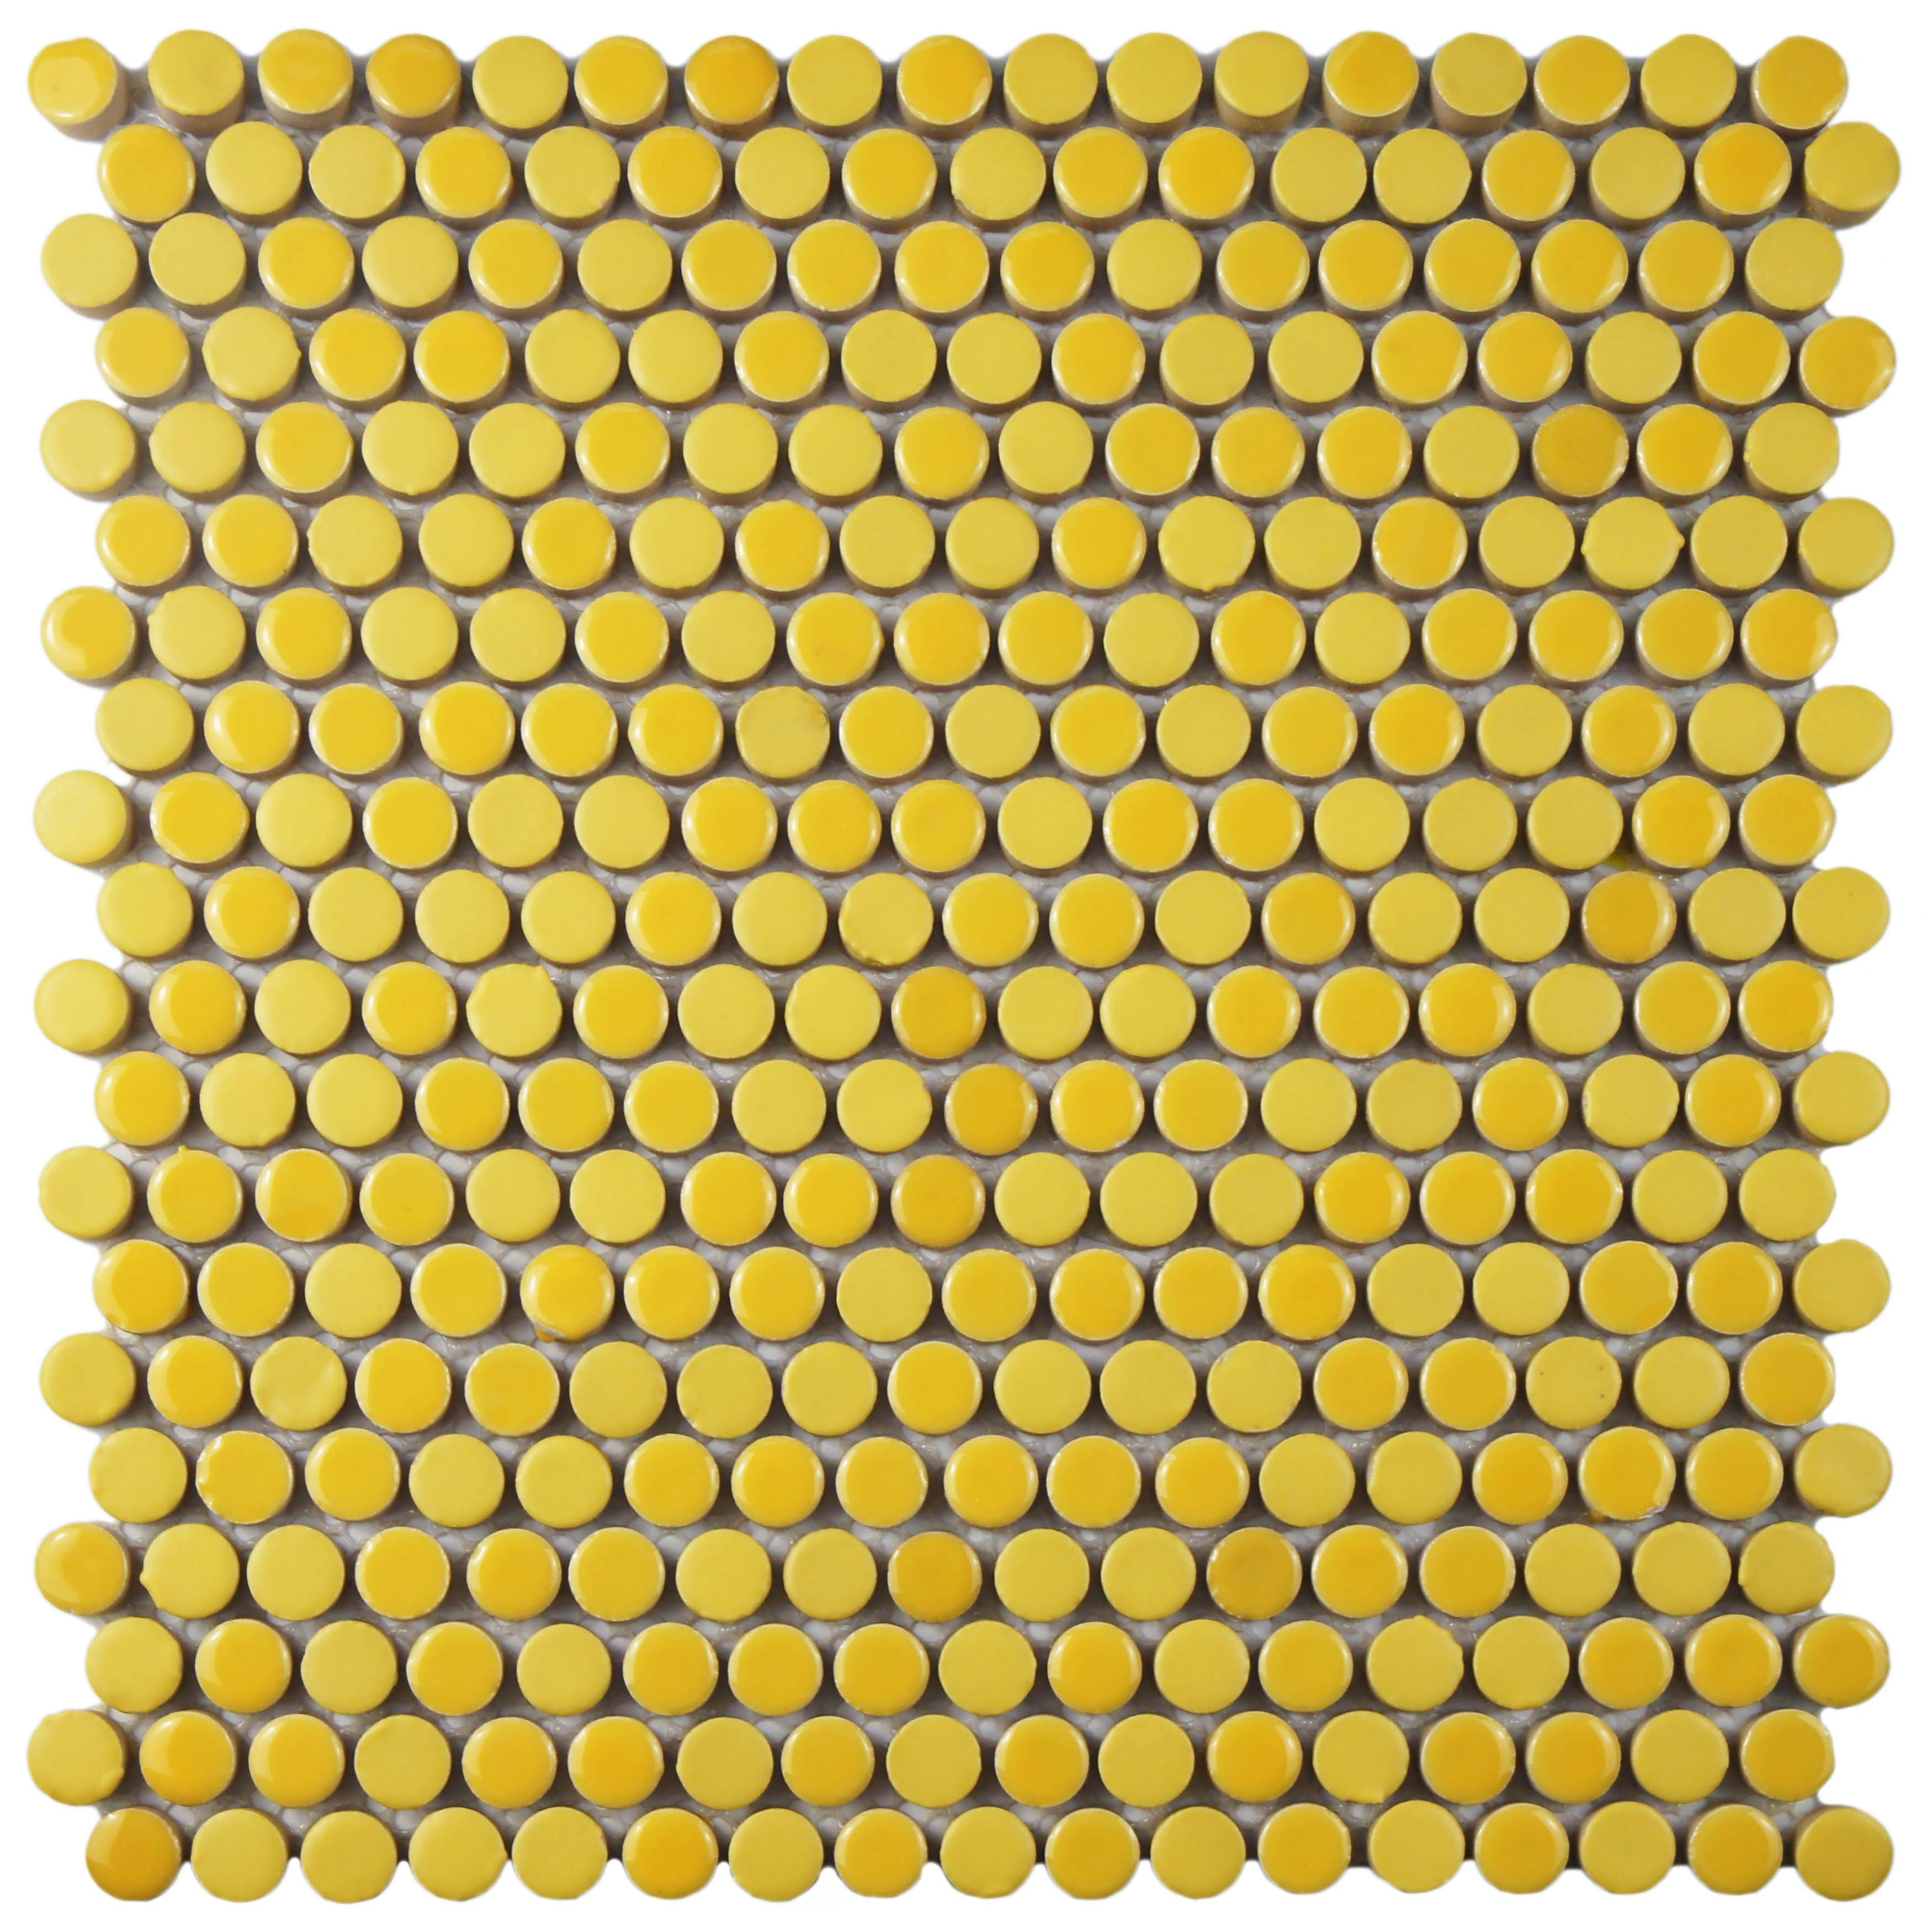 Can wall tiles be used on the floor image collections tile the somertile 12x12 inch asteroid penny round yellow porcelain the somertile asteroid penny round yellow porcelain dailygadgetfo Images